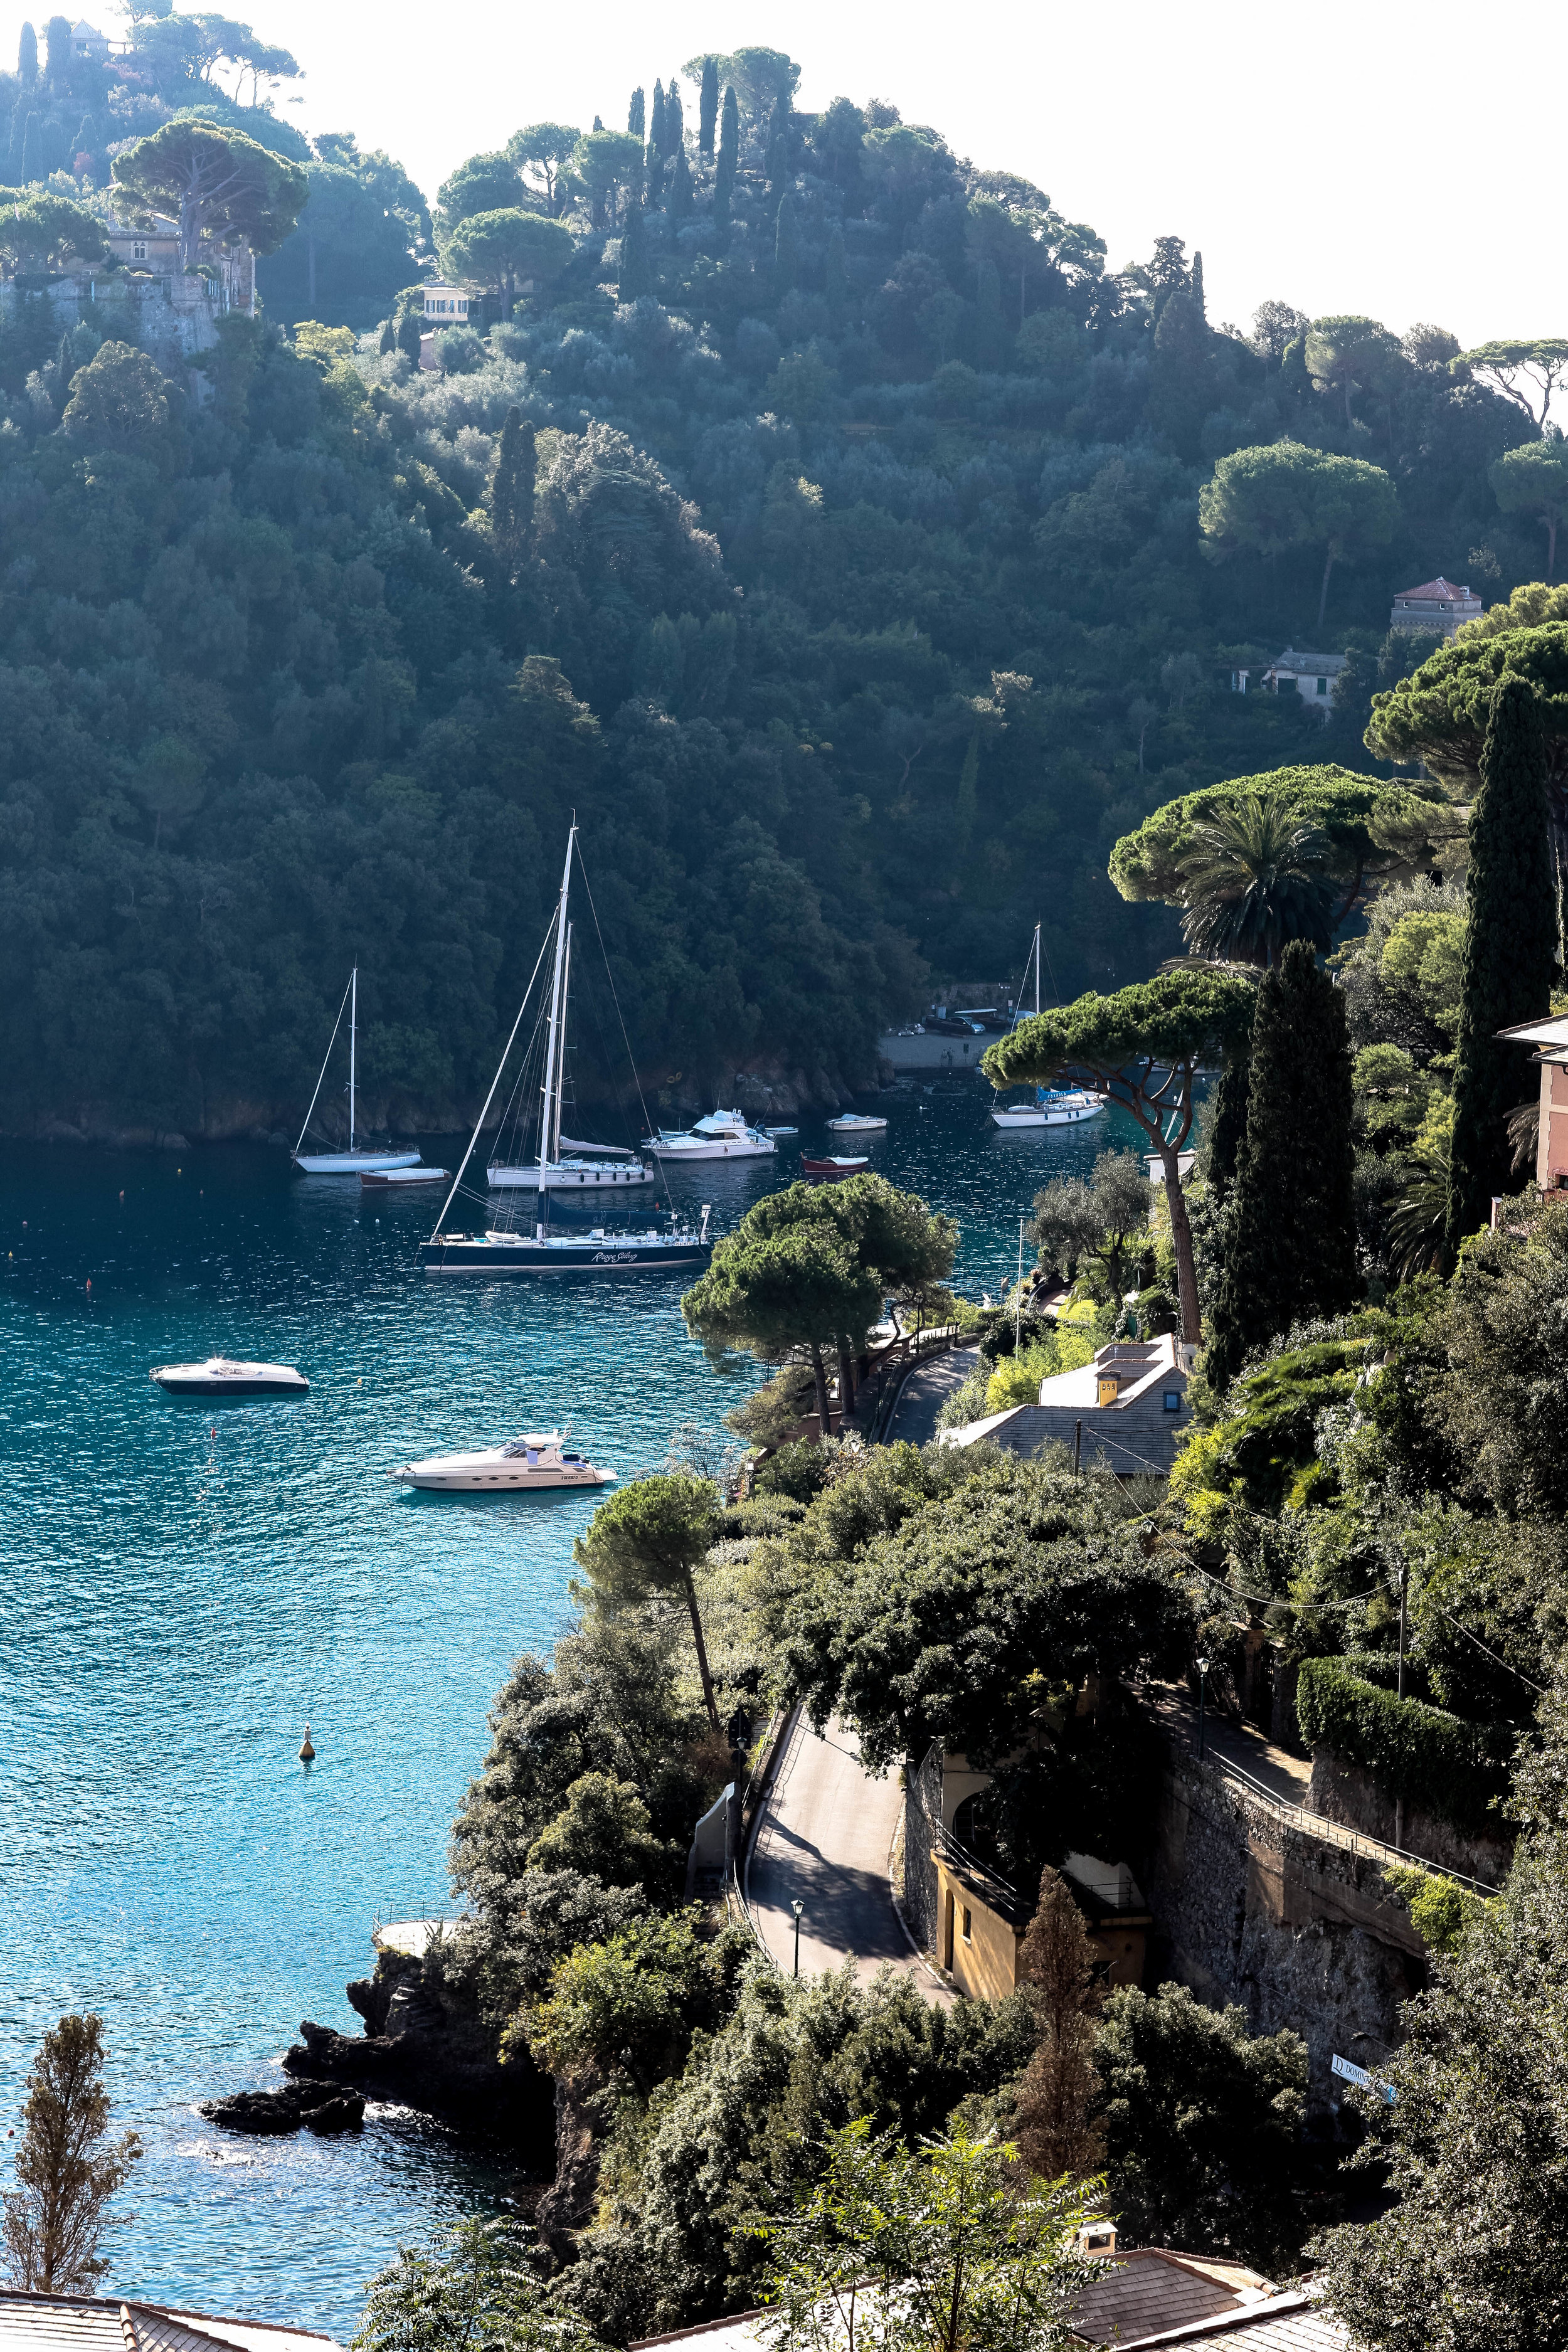 ITALIAN AND FRENCH RIVIERA with JAN HENDRIK